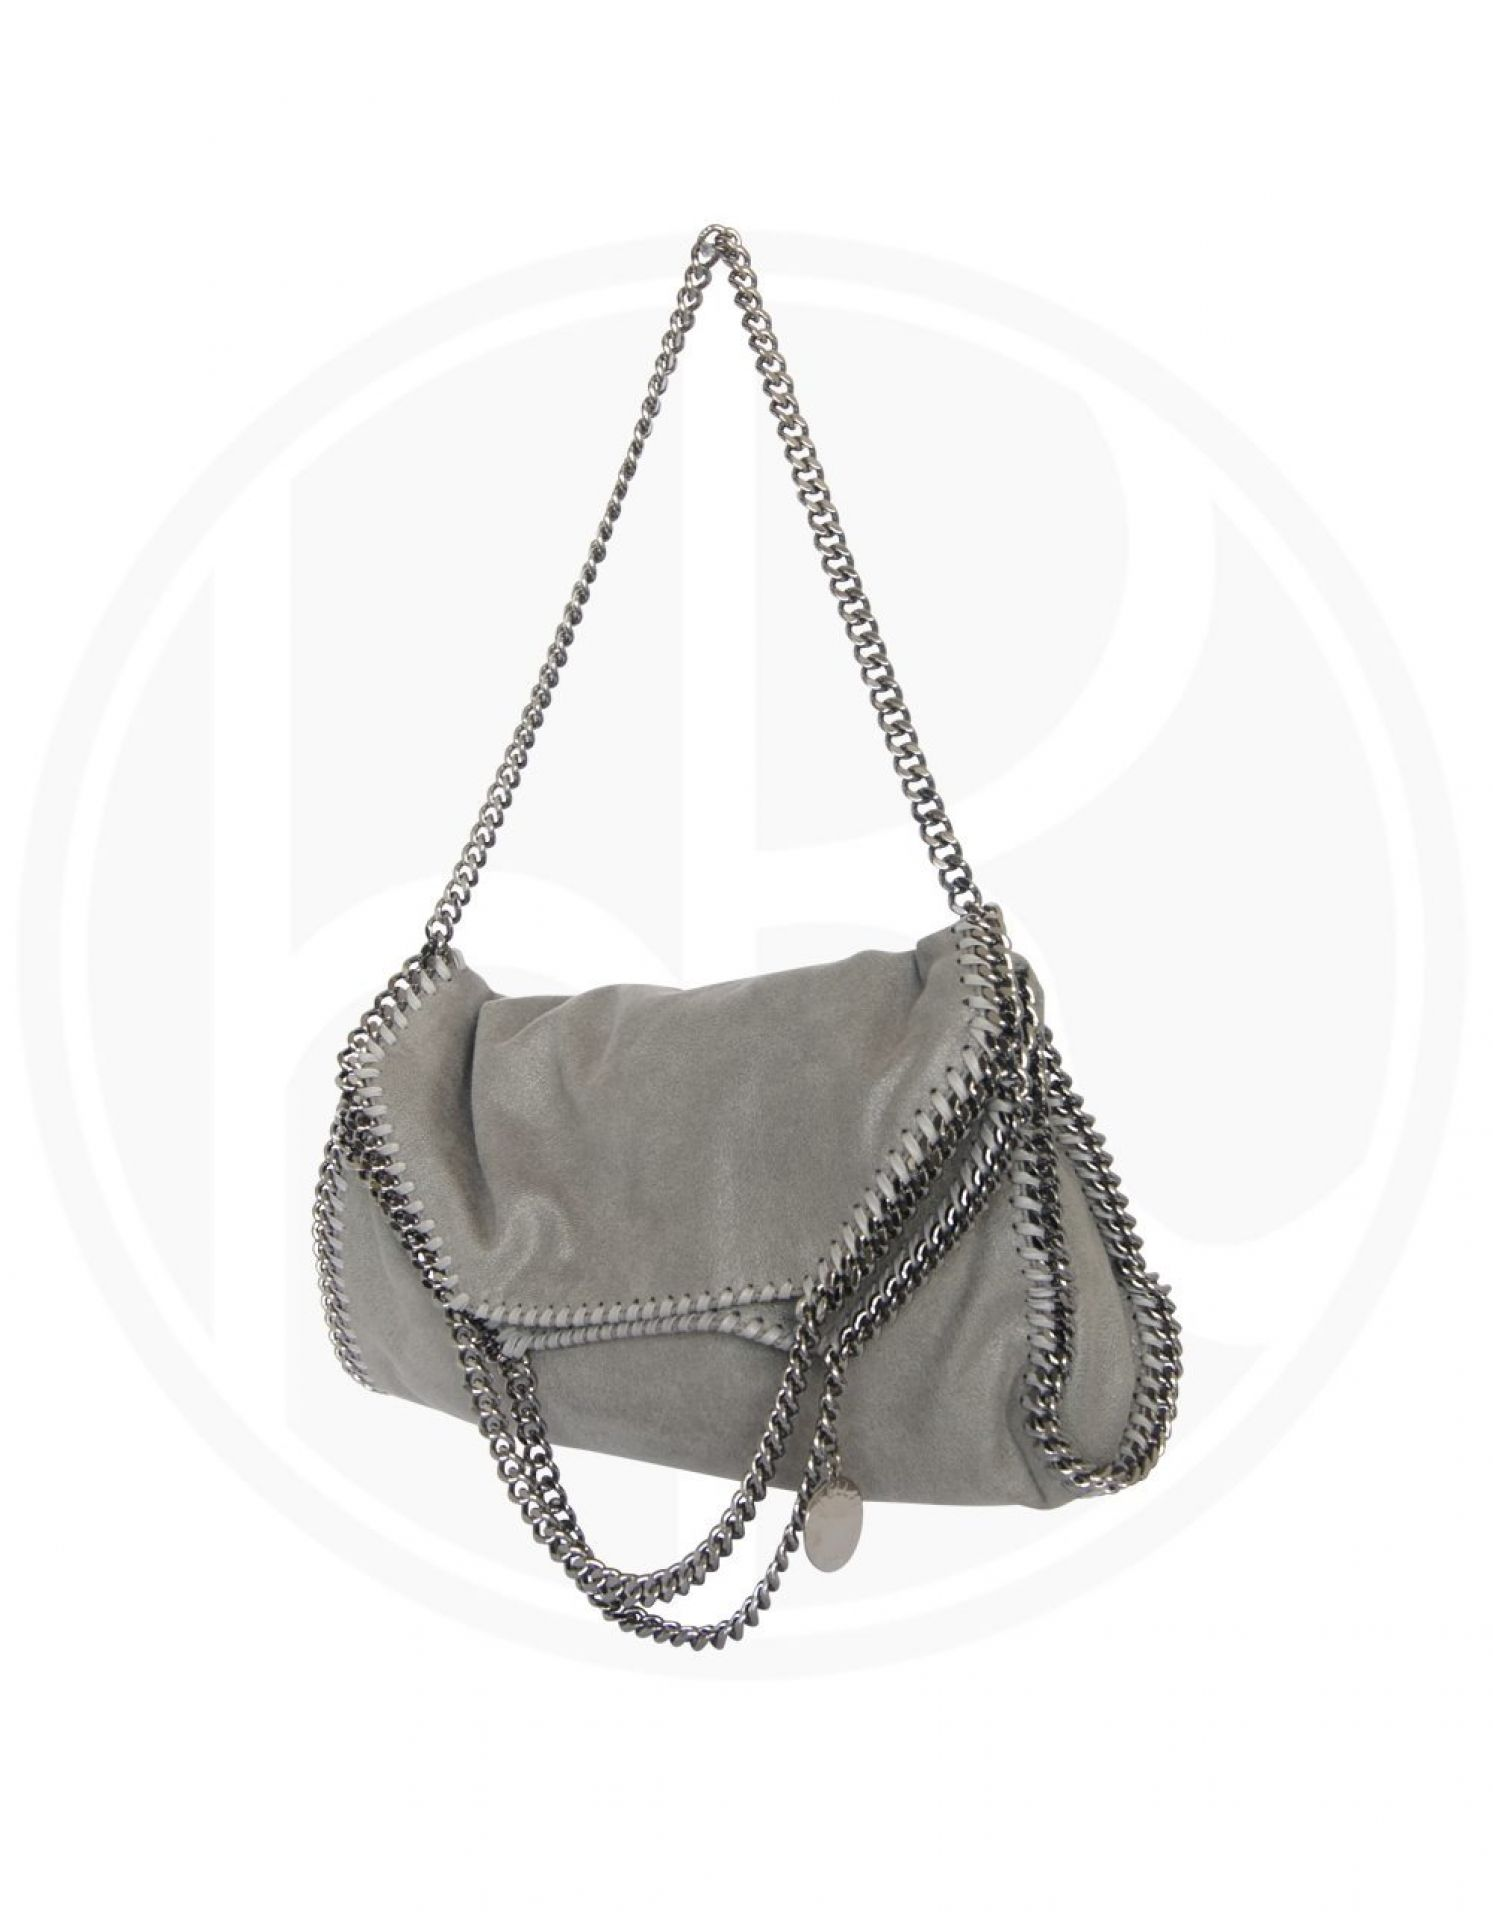 STELLA McCARTNEY Falabella Medium Handbag